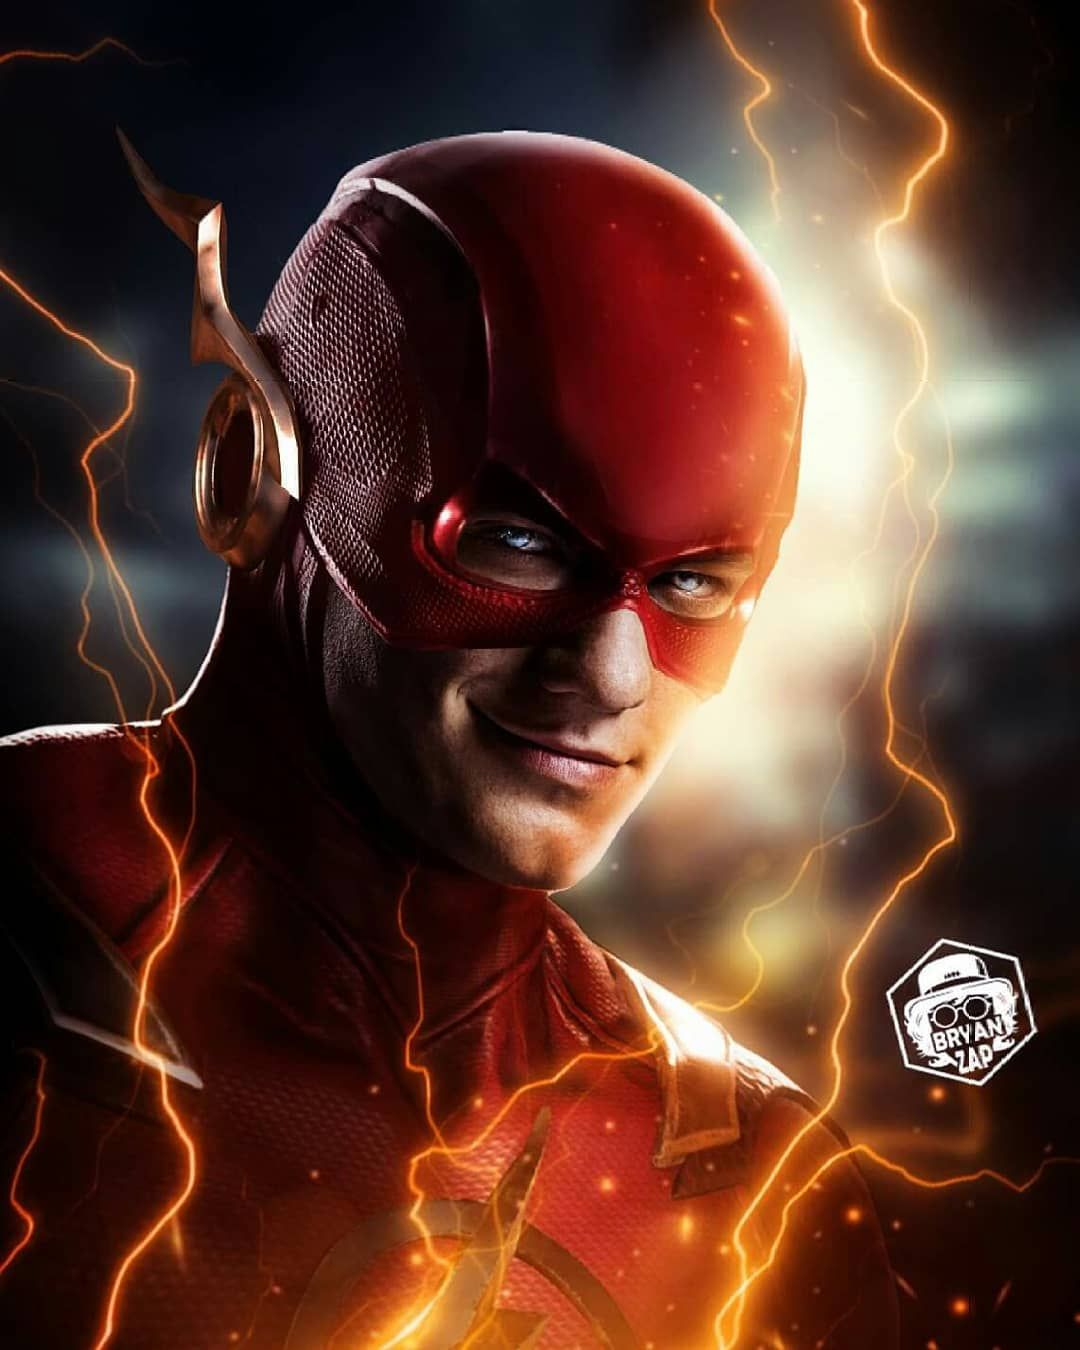 ⚡Lucas Till as The Flash ⚡ Apparently this rumor comes from the same person who said that Pattinson will be Batman. Lucas looks good, but… #lucastill